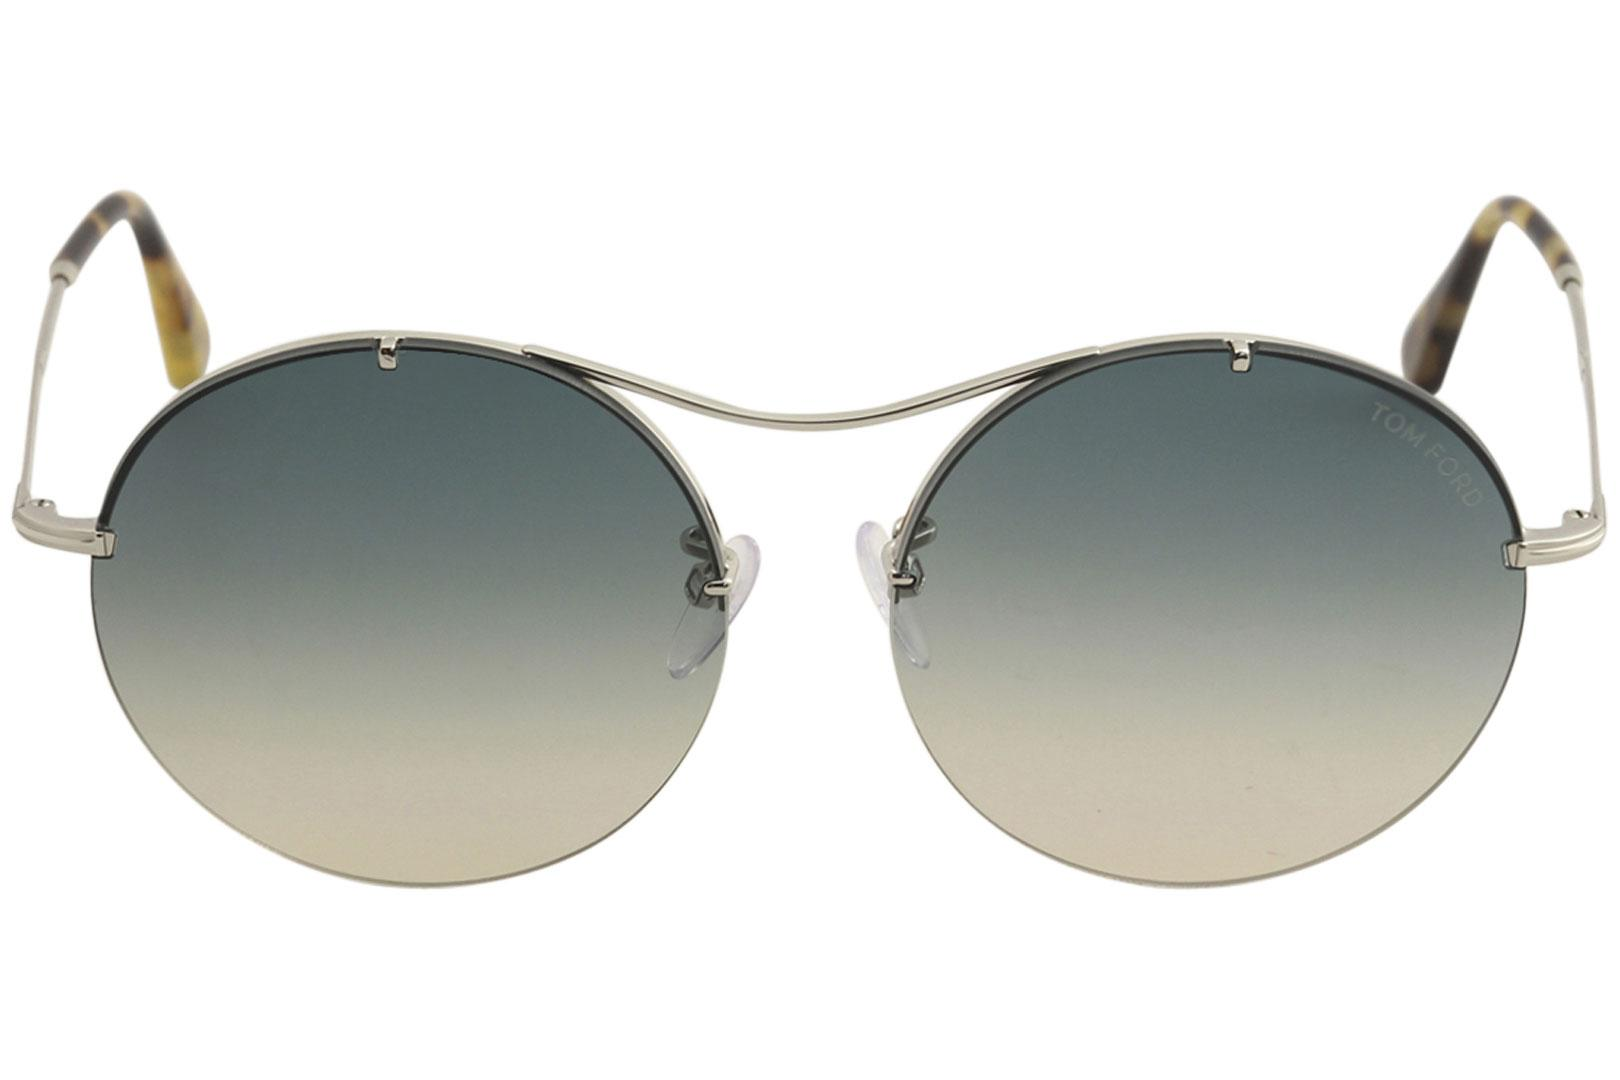 dc45c34bbd5 Tom Ford Women s Veronique-02 TF565 TF 565 Fashion Round Sunglasses by Tom  Ford